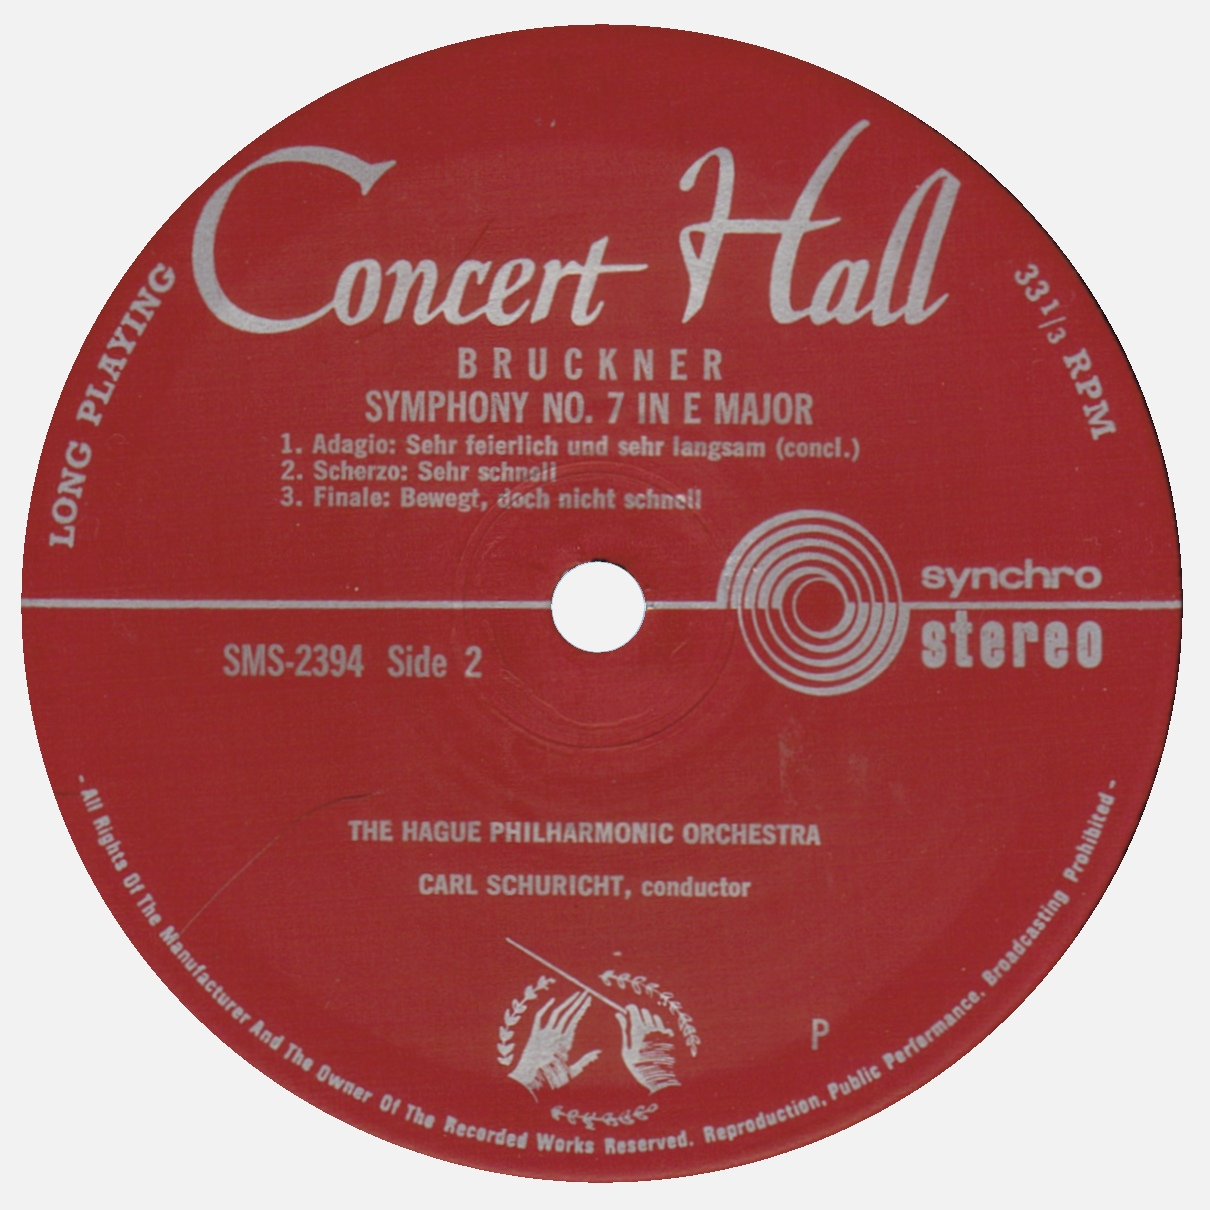 Étiquette verso du disque Concert Hall / Musical Masterpiece Society SMS 2304